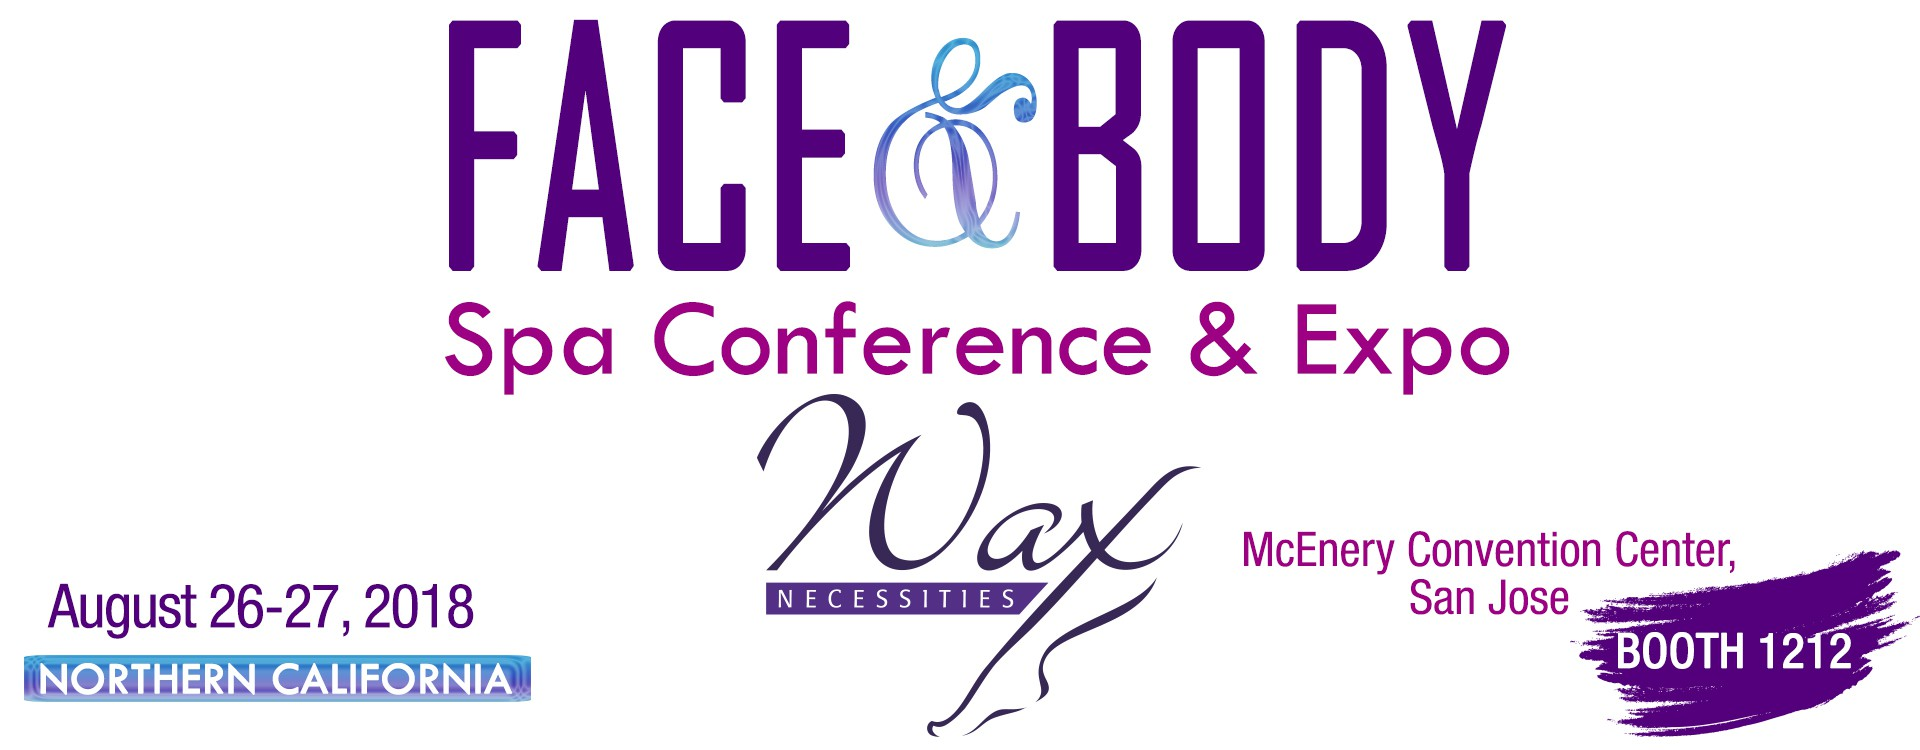 Face & Body Spa Conference and Expo